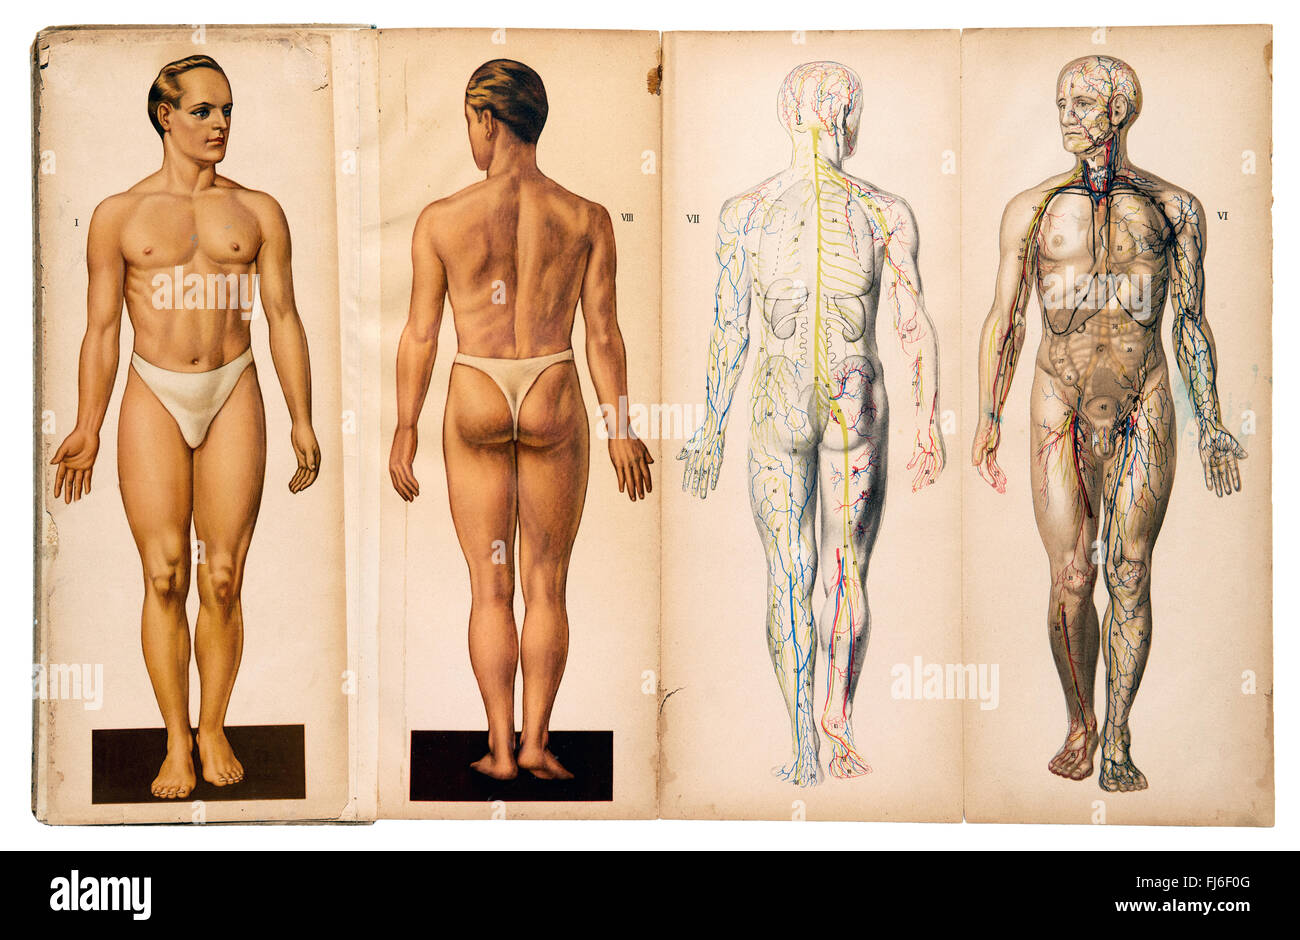 Old vintage male medical anatomy charts Stock Photo: 97259136 - Alamy